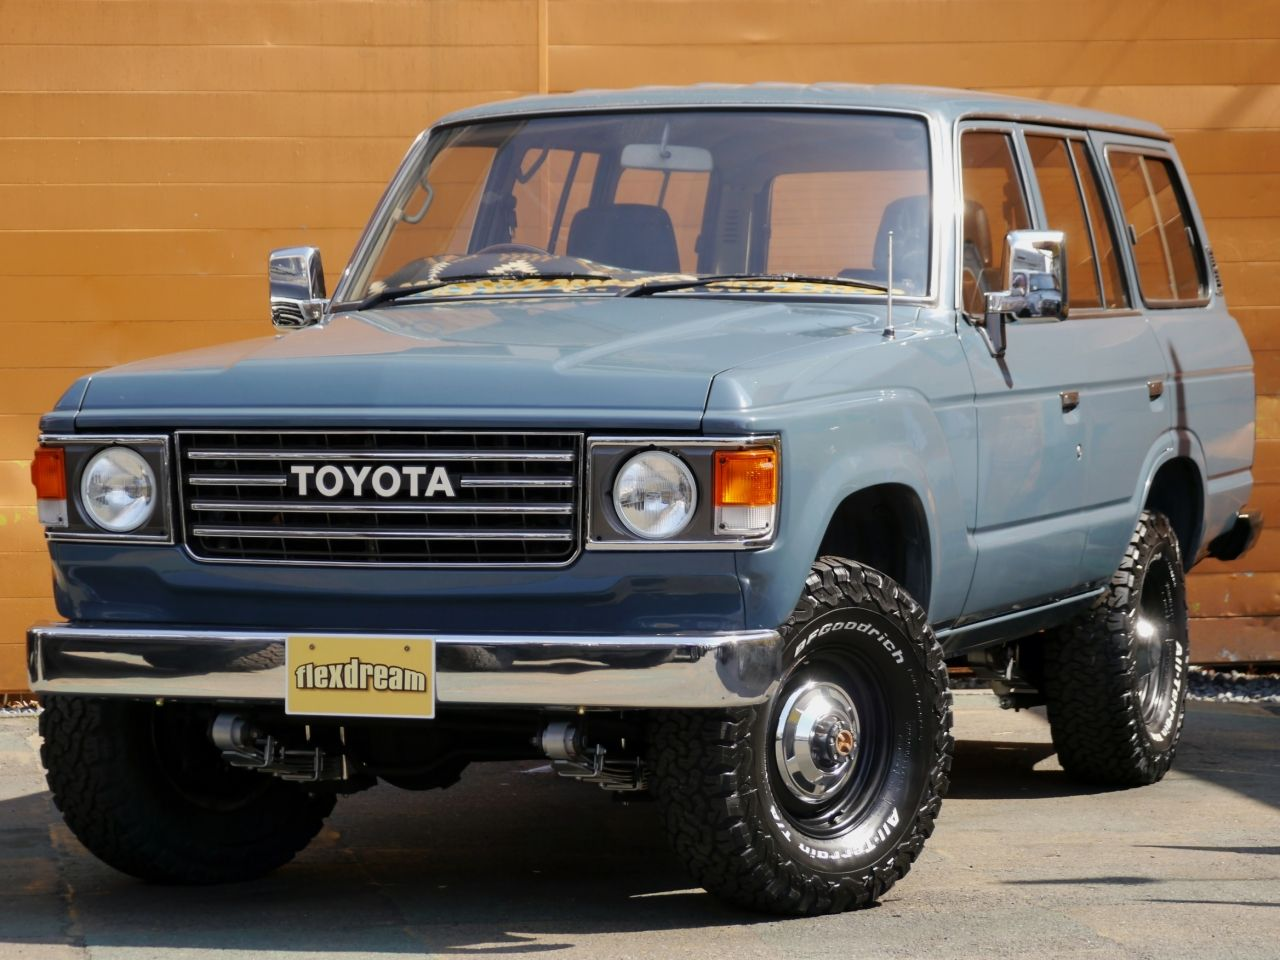 Land Cruiser Of The Day Enter The World Of Toyota Land Cruisers In 2020 Toyota Land Cruiser Land Cruiser New Toyota Land Cruiser